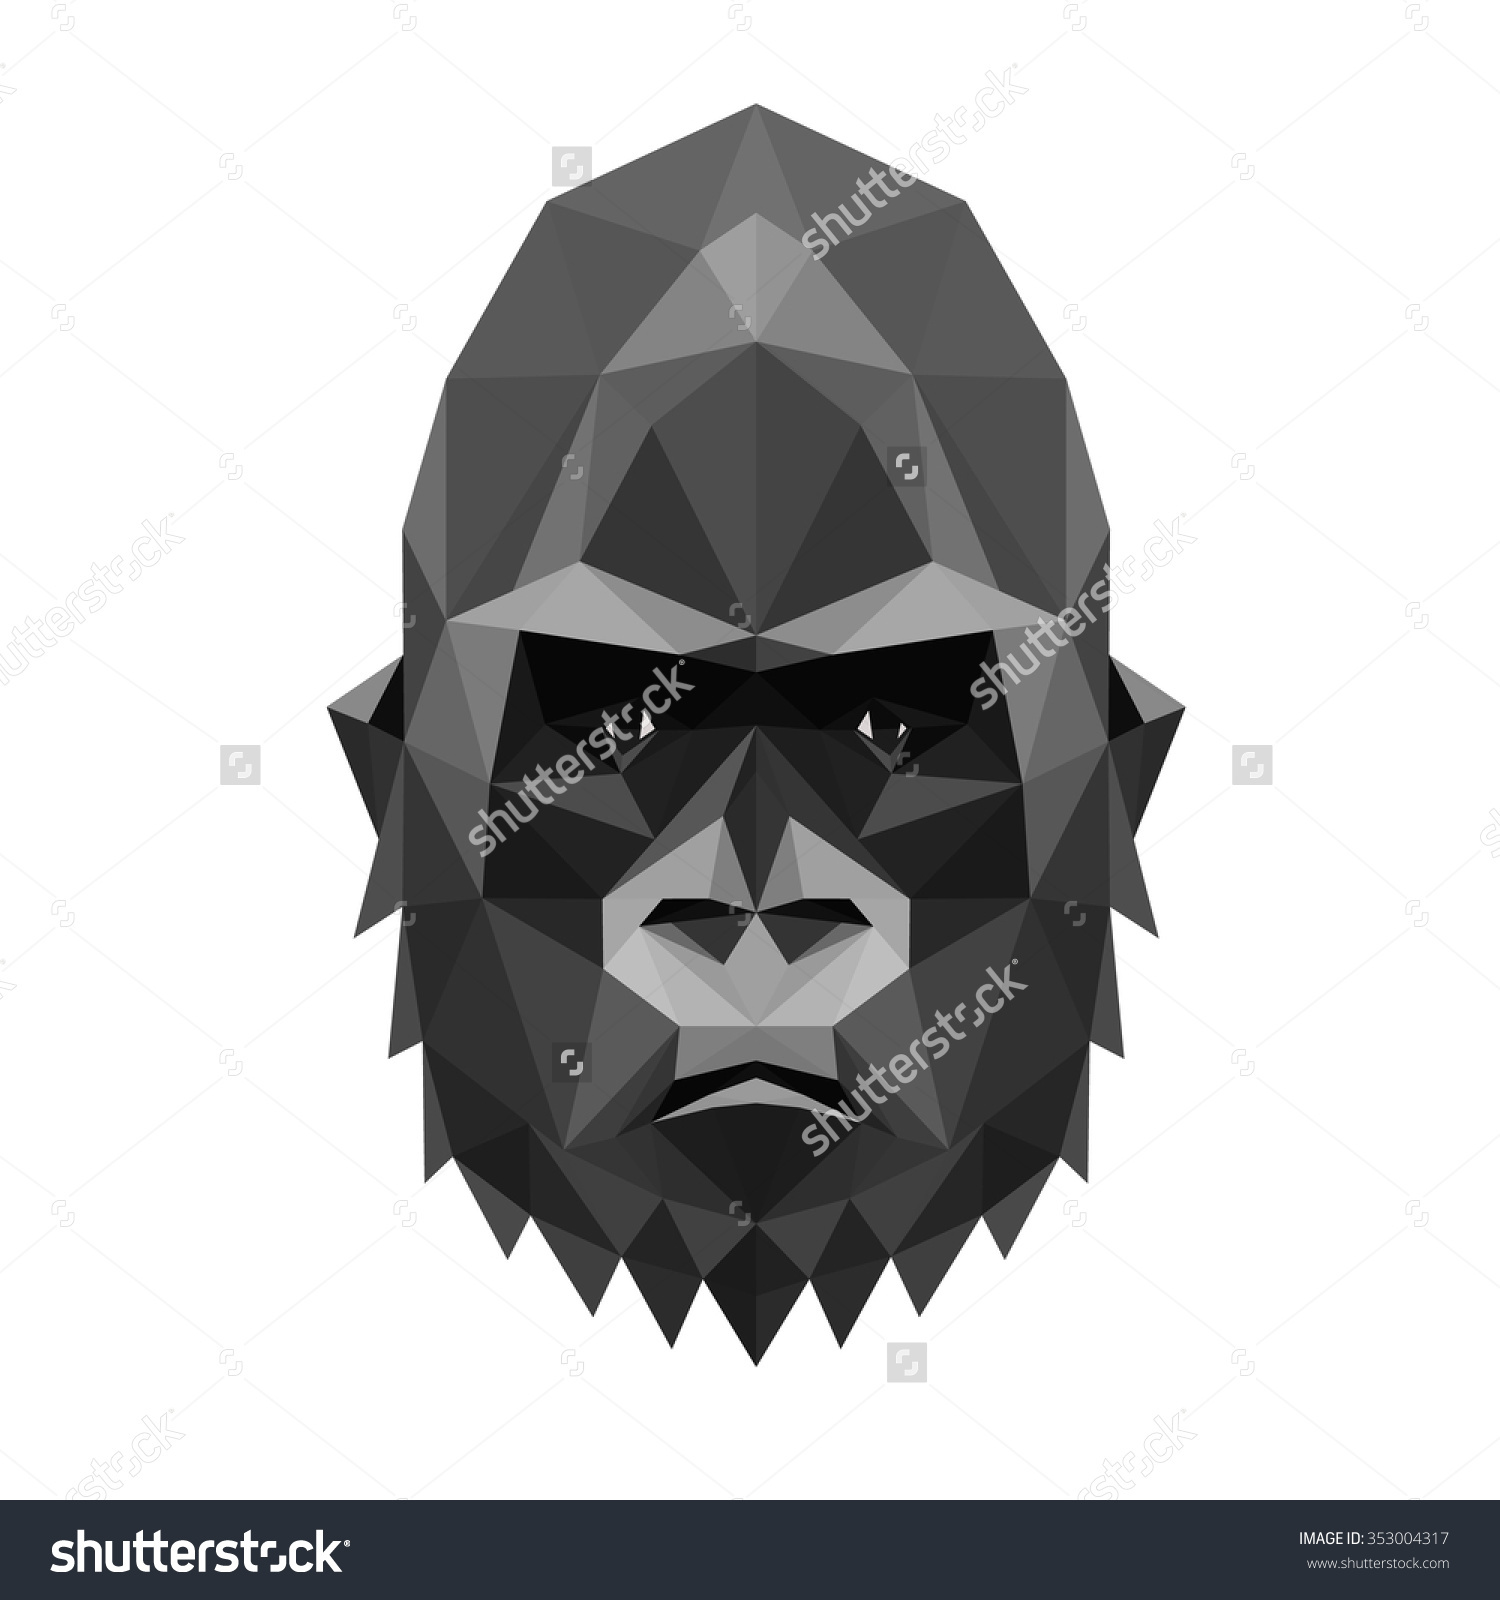 Low Poly Symmetrical Vector Illustration Sullen Stock Vector.